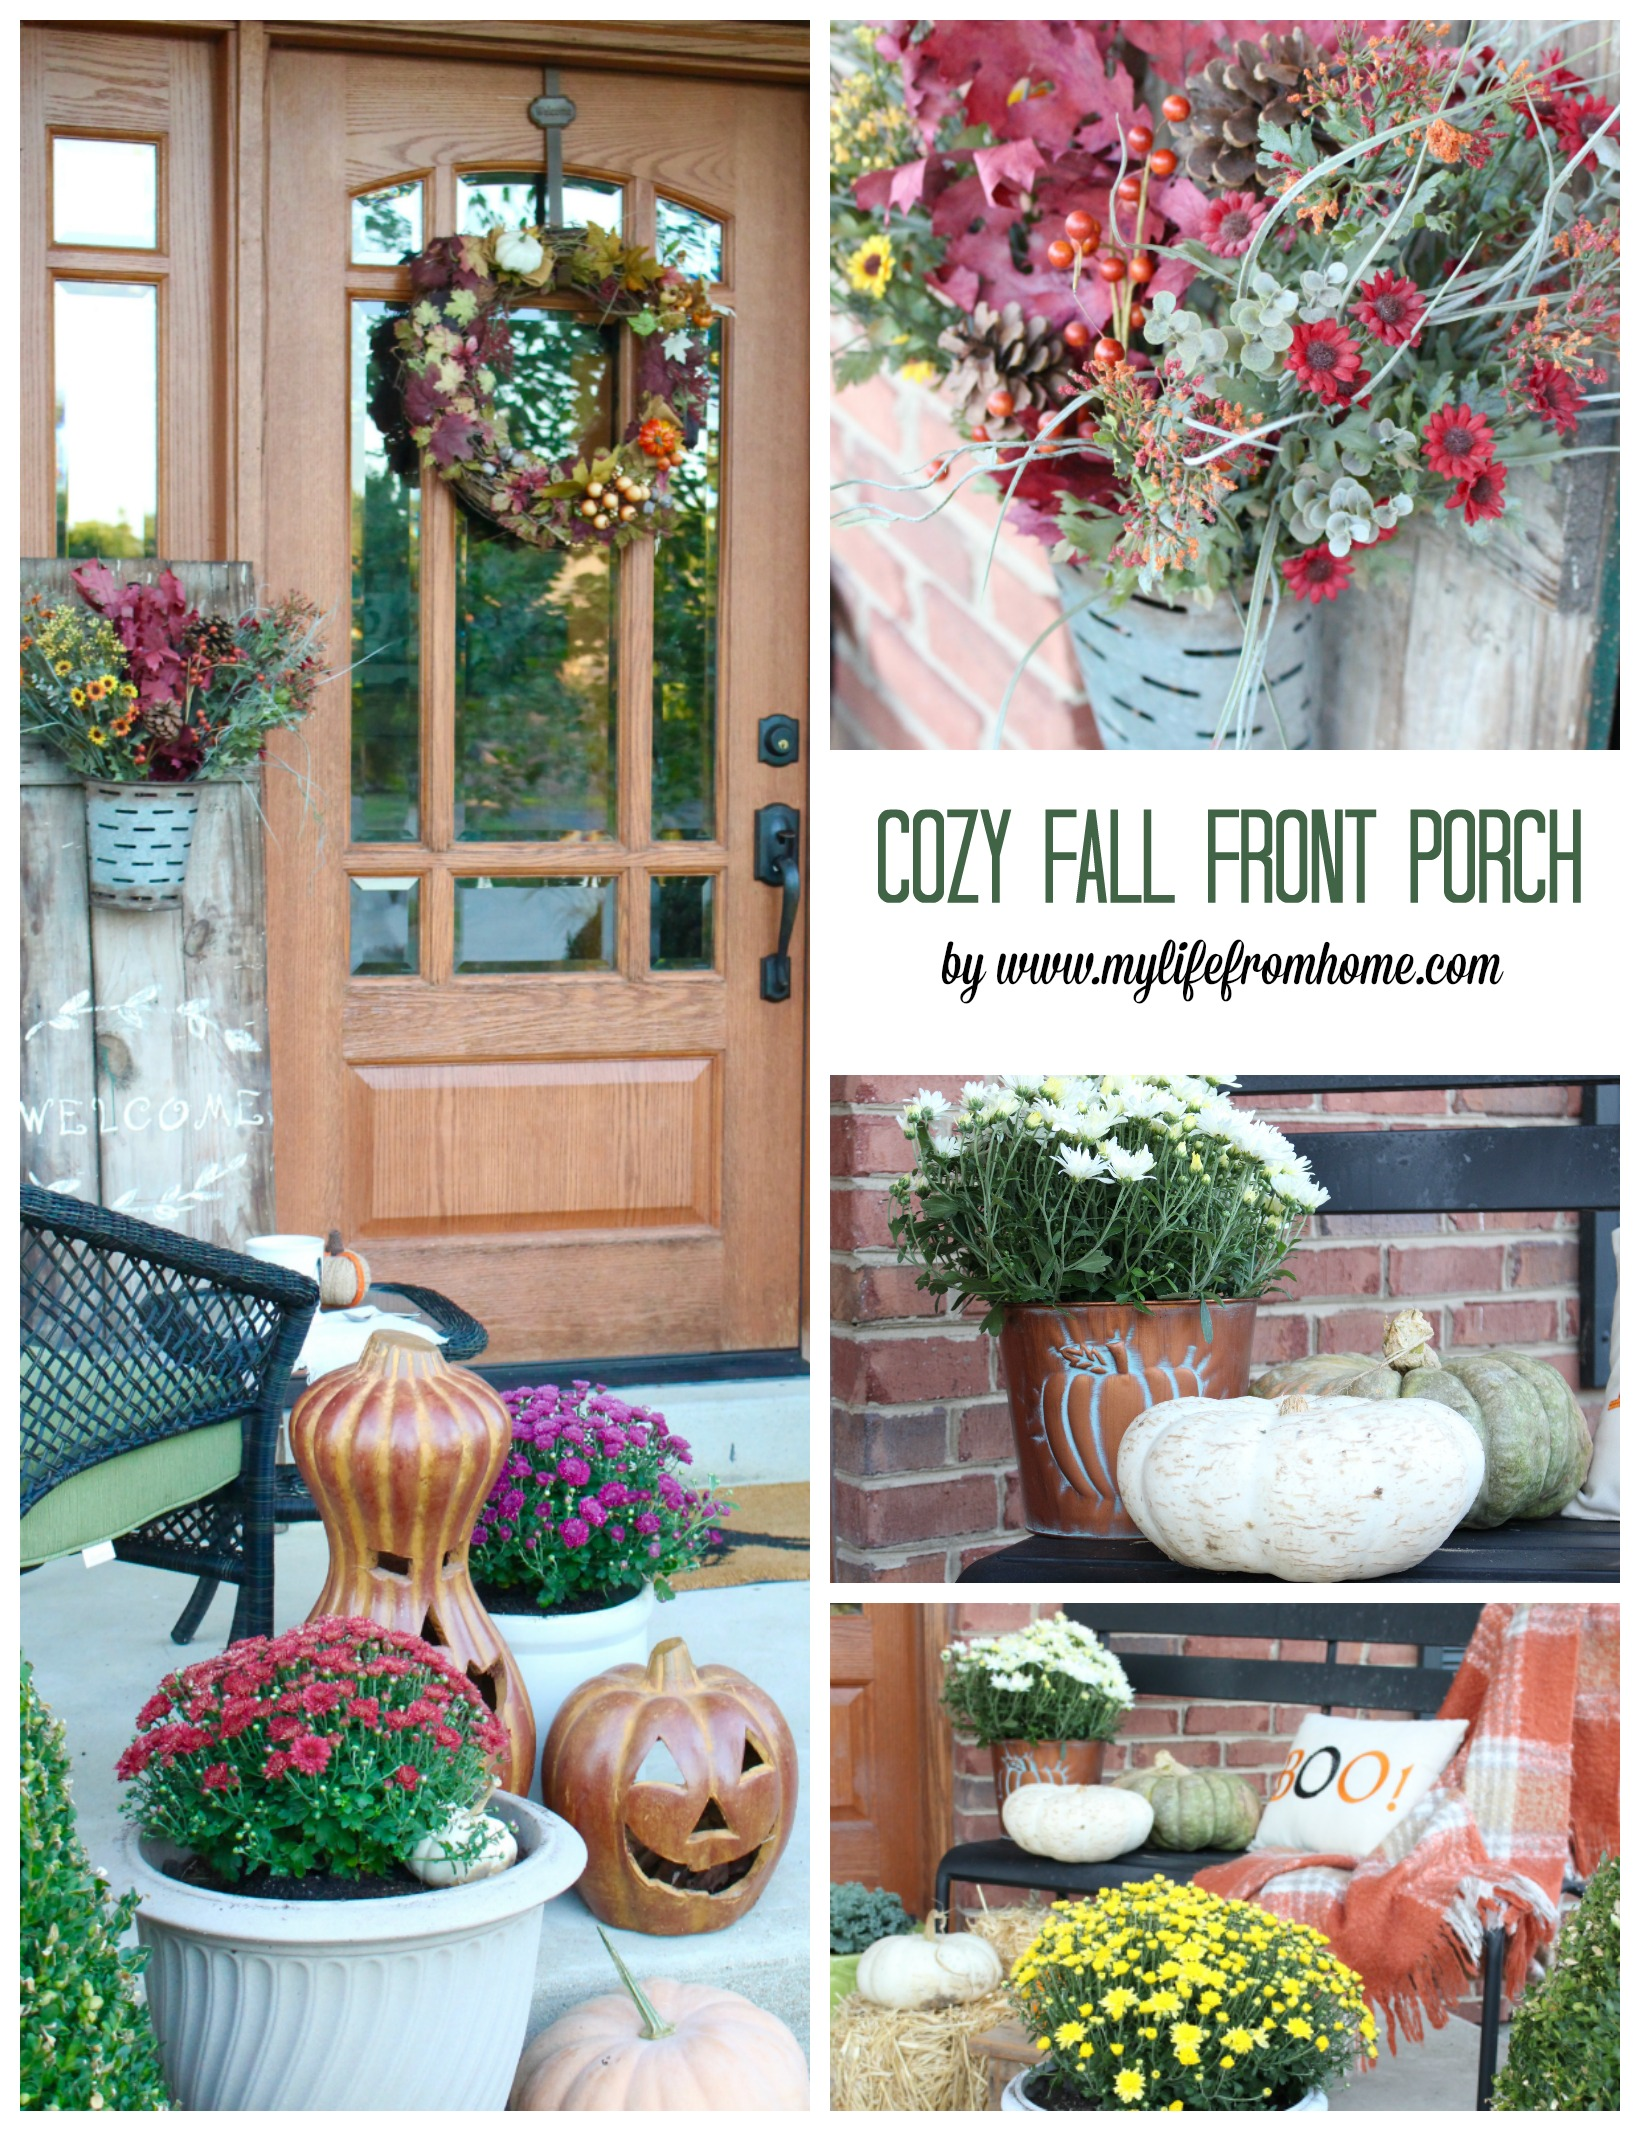 cozy-fall-front-porch-front-porch-decor-seasonal-outdoor-decor-farmhouse-front-porch-fall-ideas-for-decorating-a-front-porch